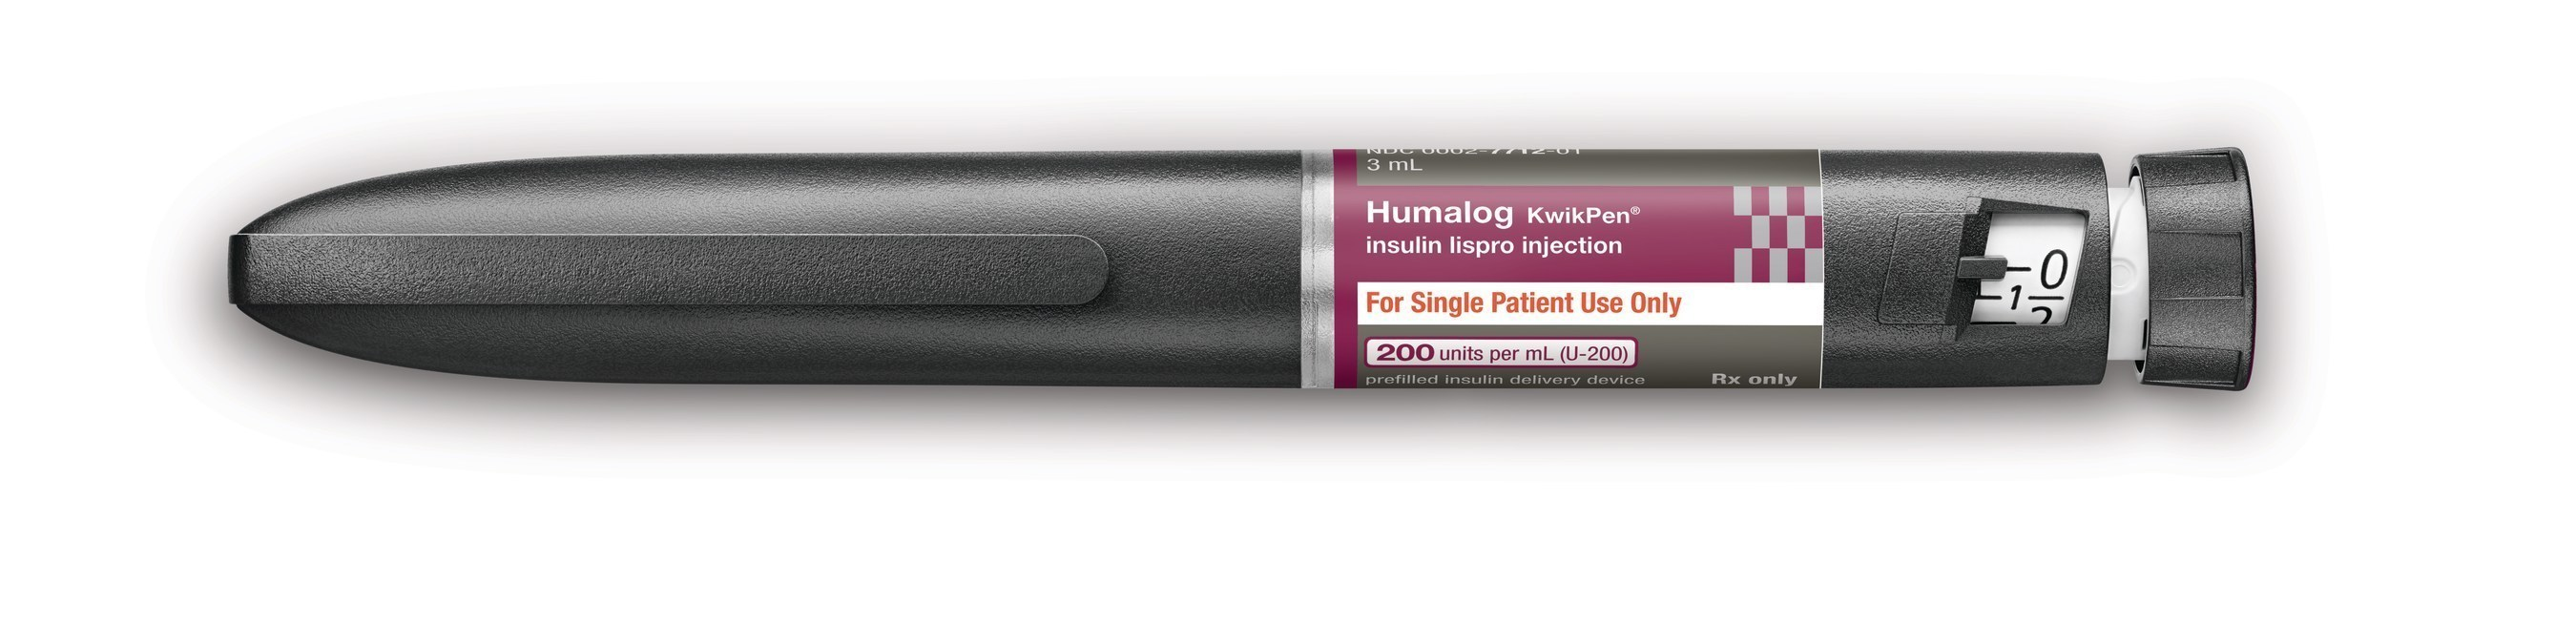 Lilly's Humalog® 200 units/mL KwikPen® Now Available in U S